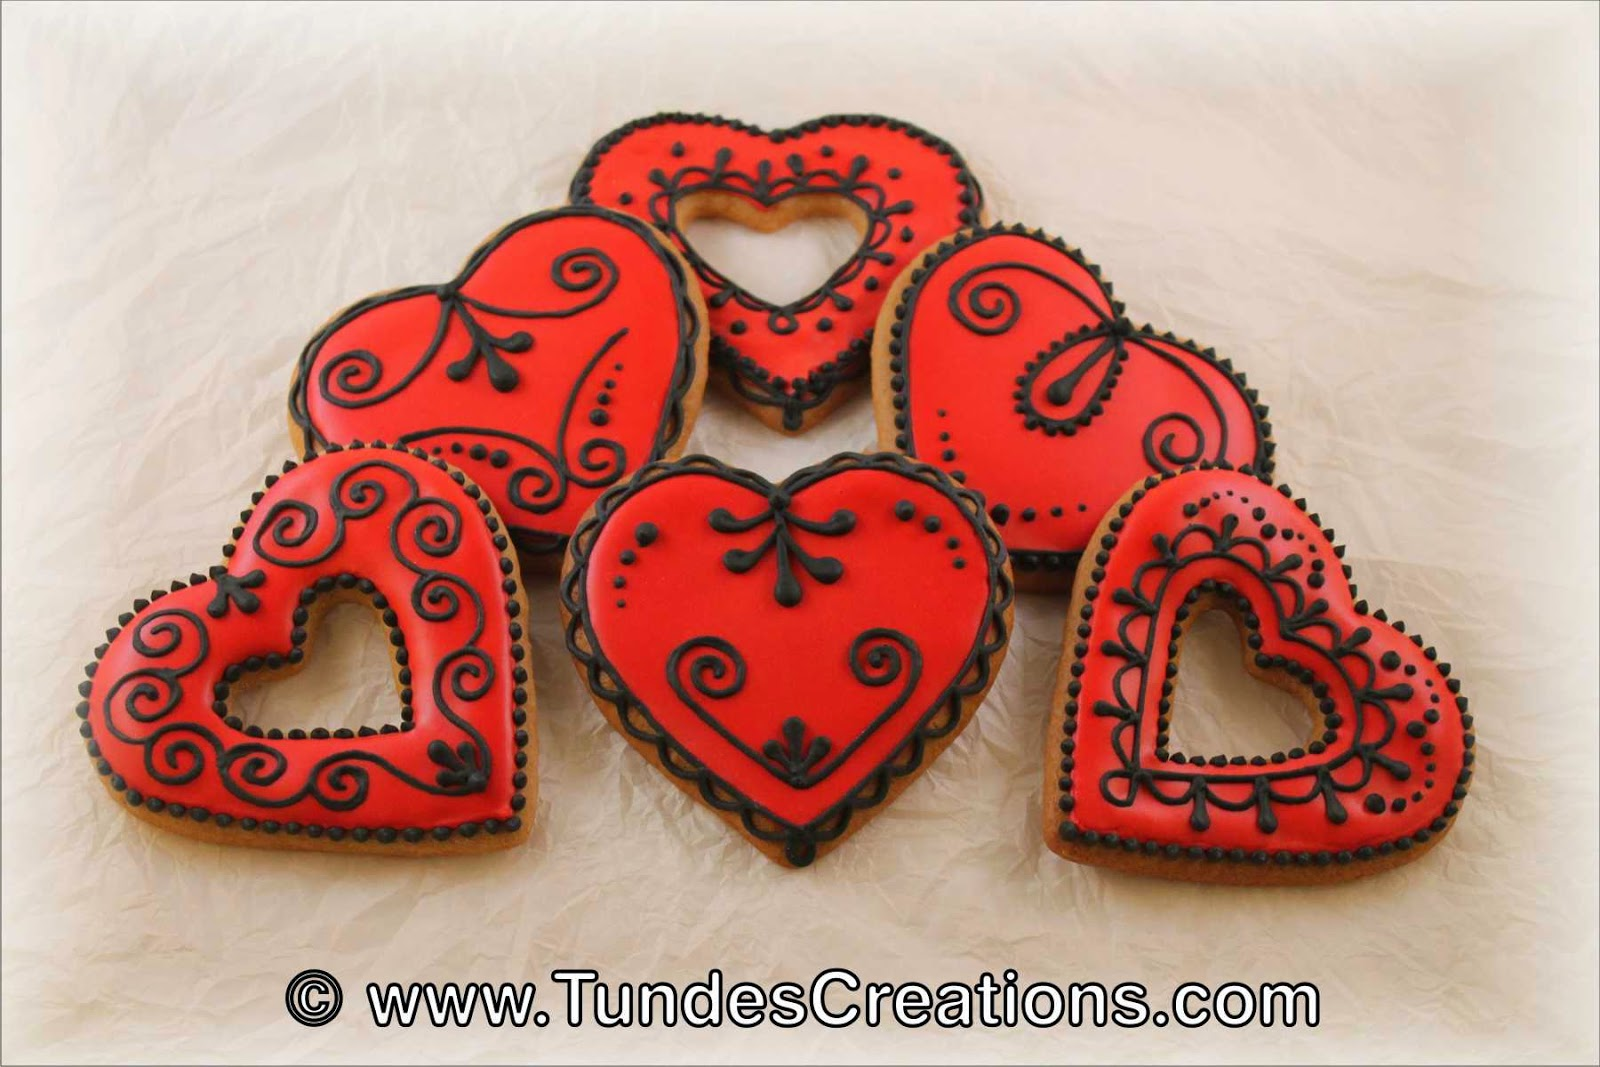 Red and black traditional Valentine's gingerbread hearts.